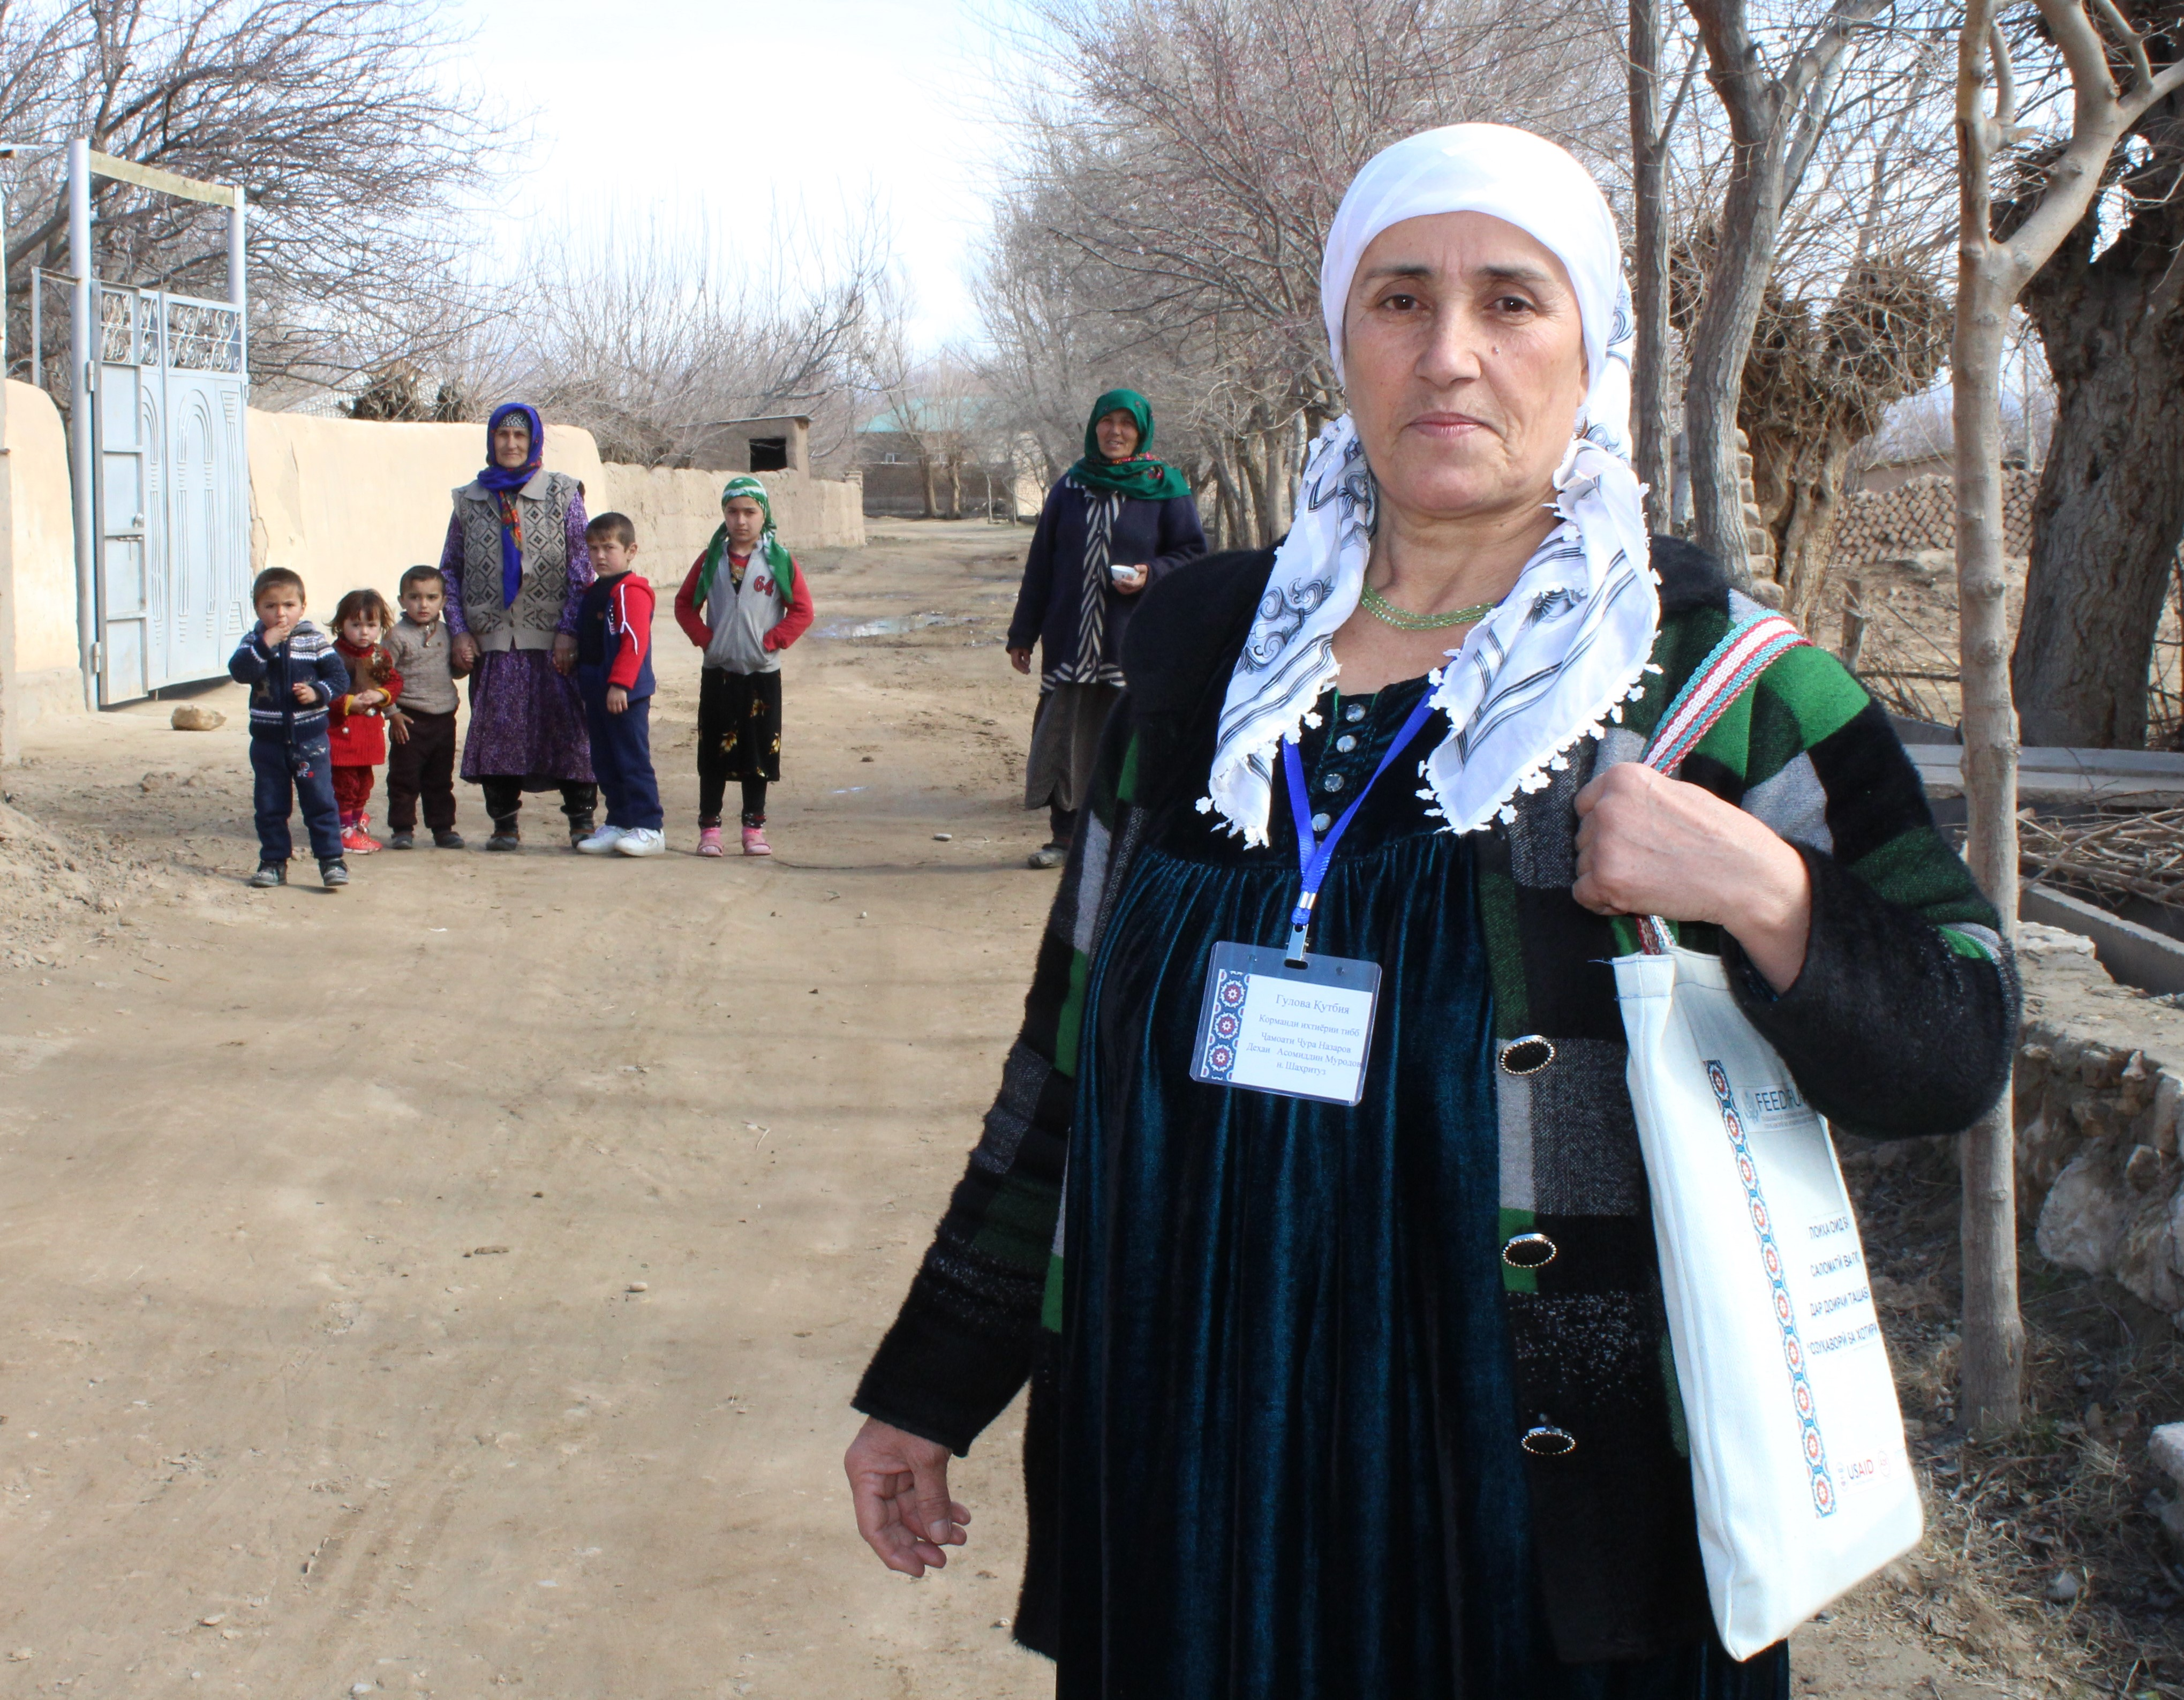 Thousands of people in Khatlon region now have greater access to health services and sanitation, thanks to the work of community health volunteers. Photo by Khosiyatkhon Komilova for IntraHealth International.